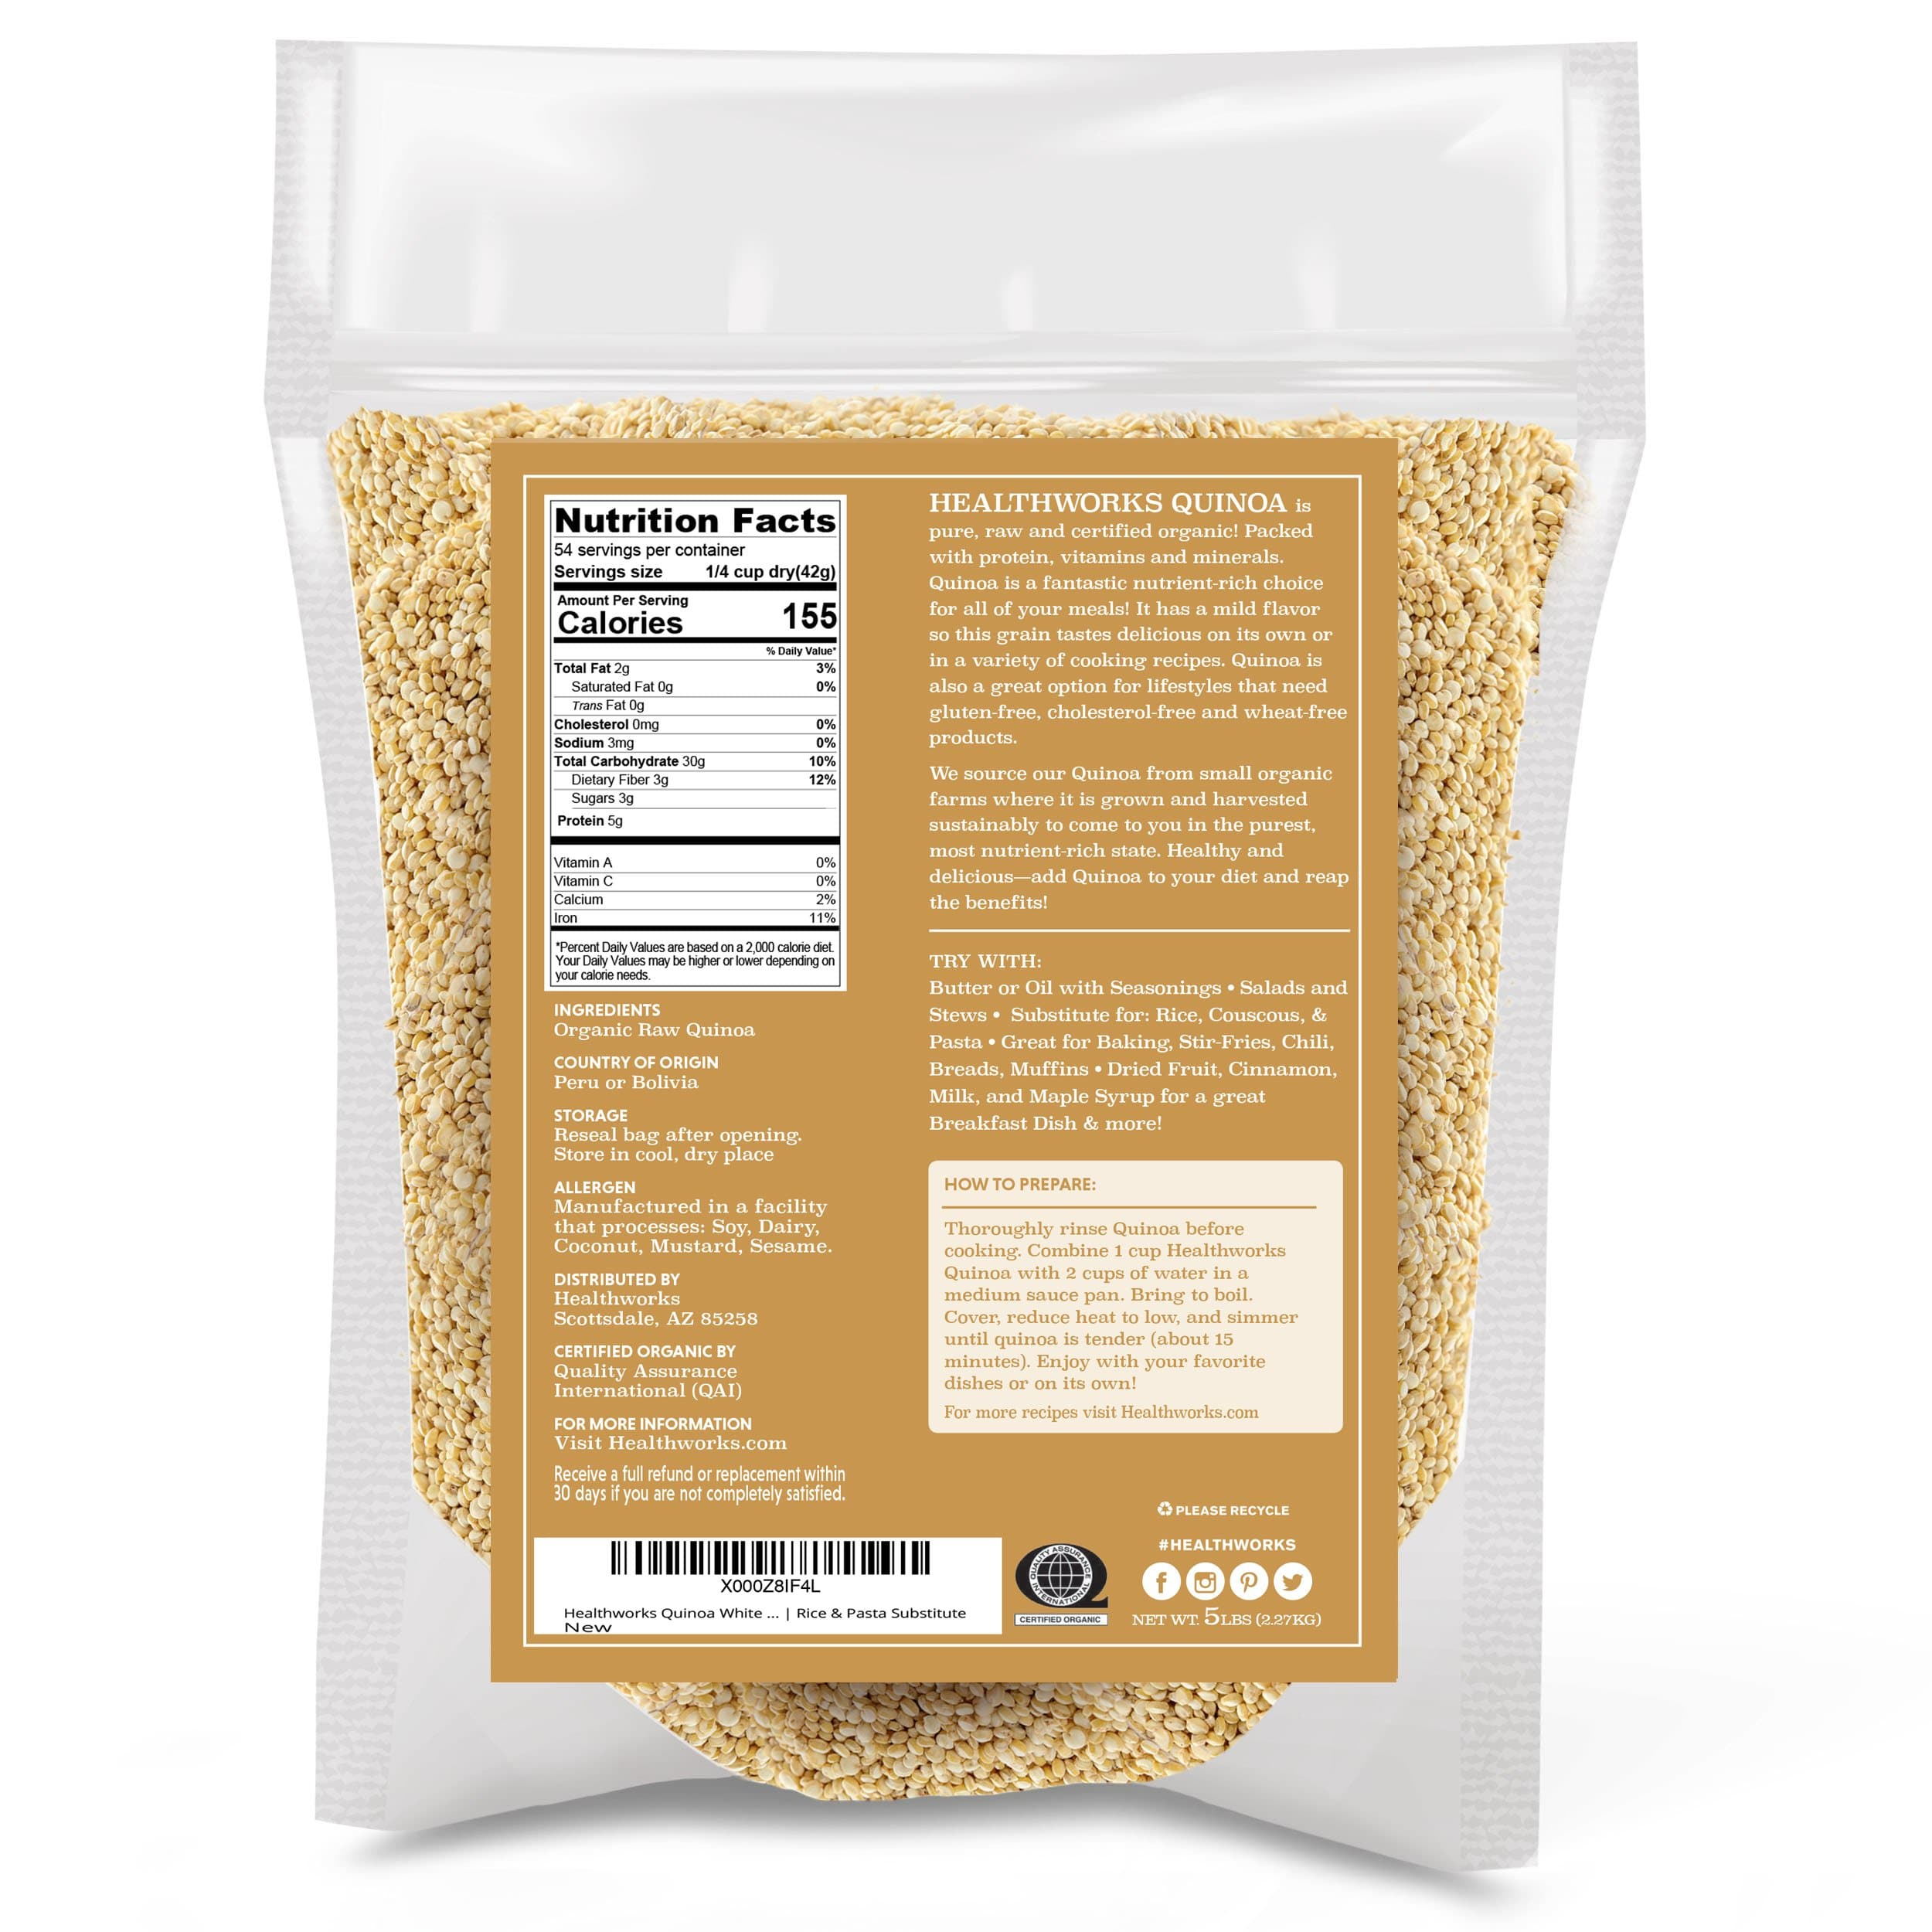 Healthworks Quinoa White Whole Grain Raw Organic, 5lb